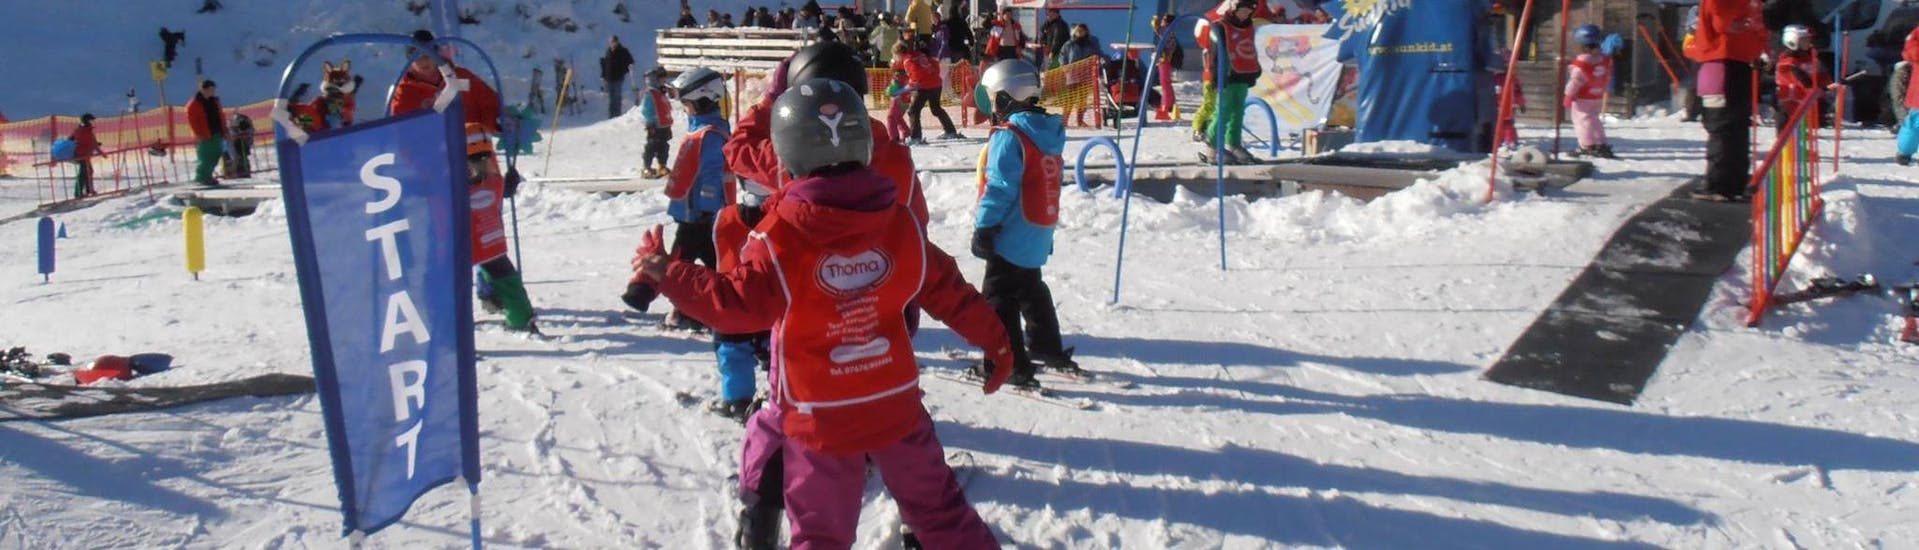 Kids Ski Lessons (4-8 y.) for All Levels with Schneesportschule Thoma Feldberg - Hero image